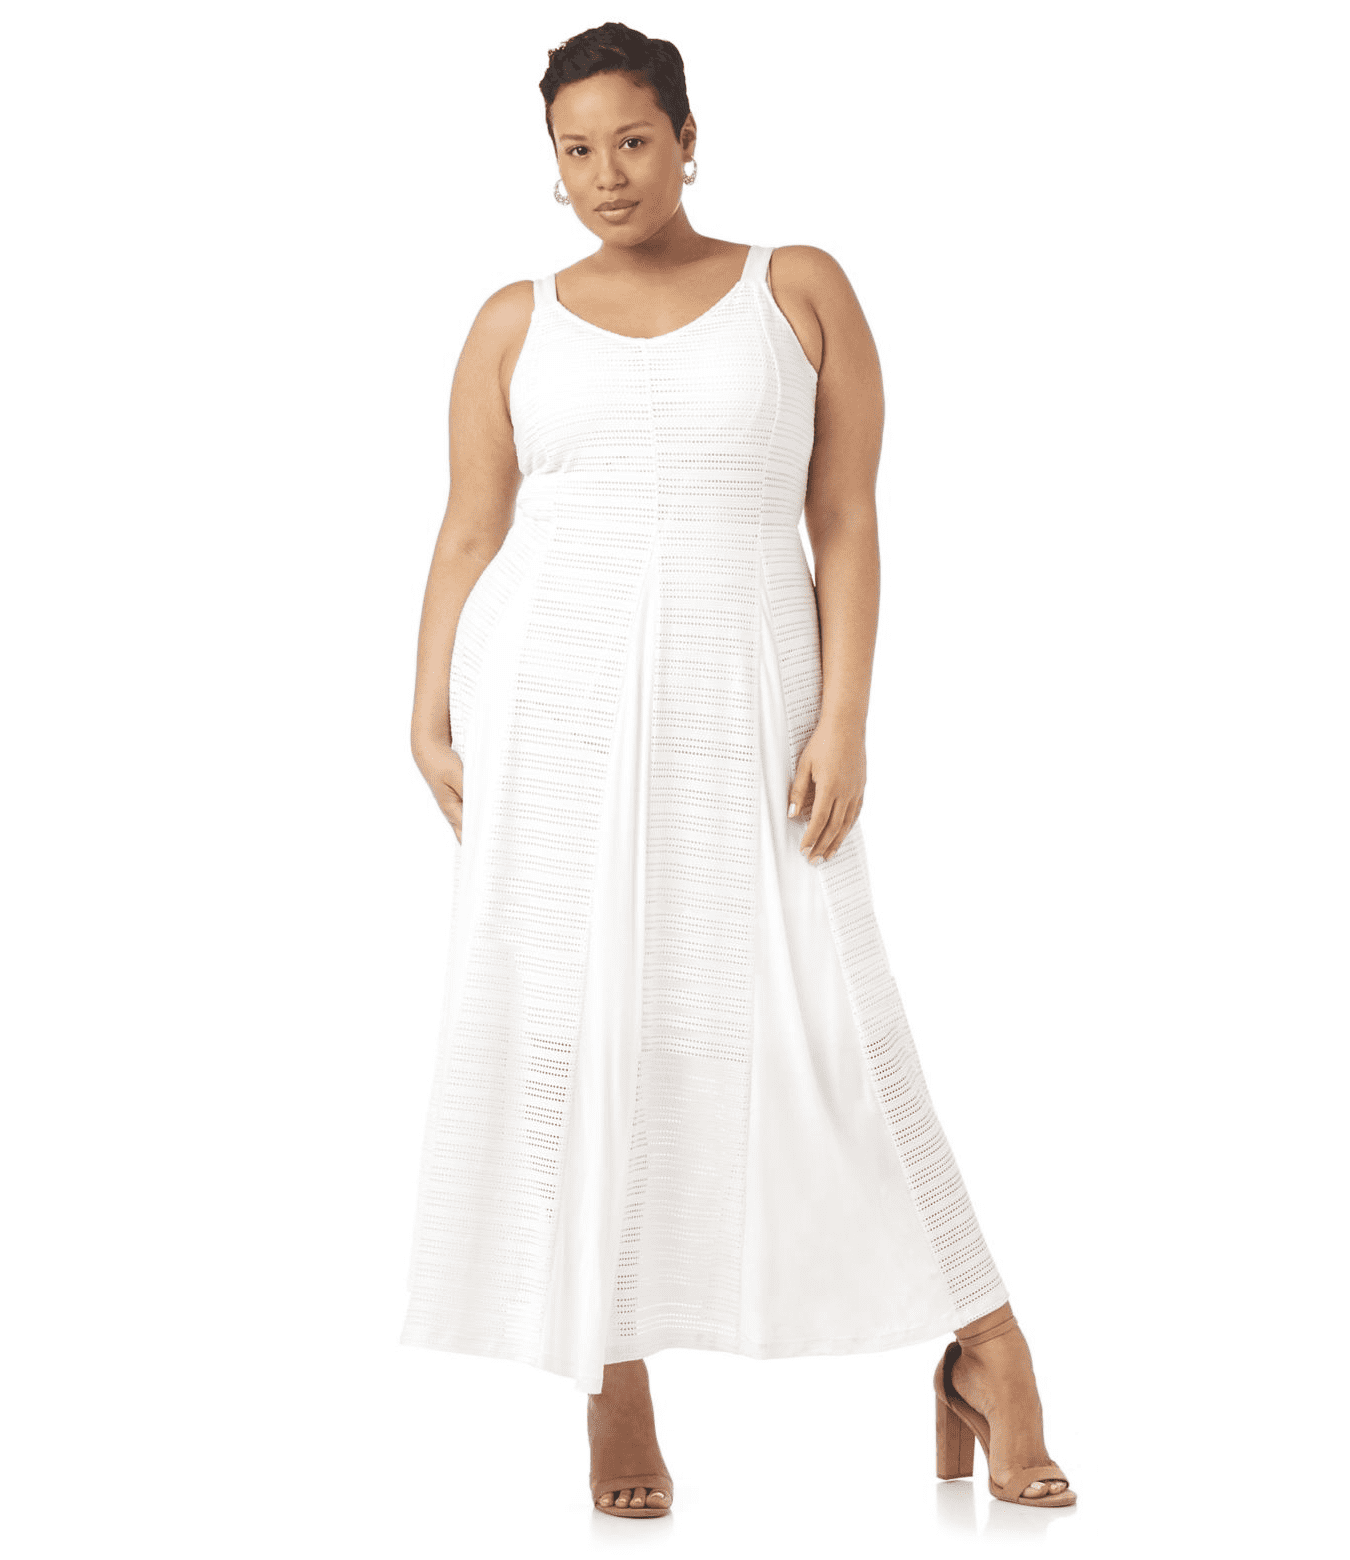 Shop for plus size petite at allshop-940oko3h.ga Free Shipping. Free Returns. All the time.